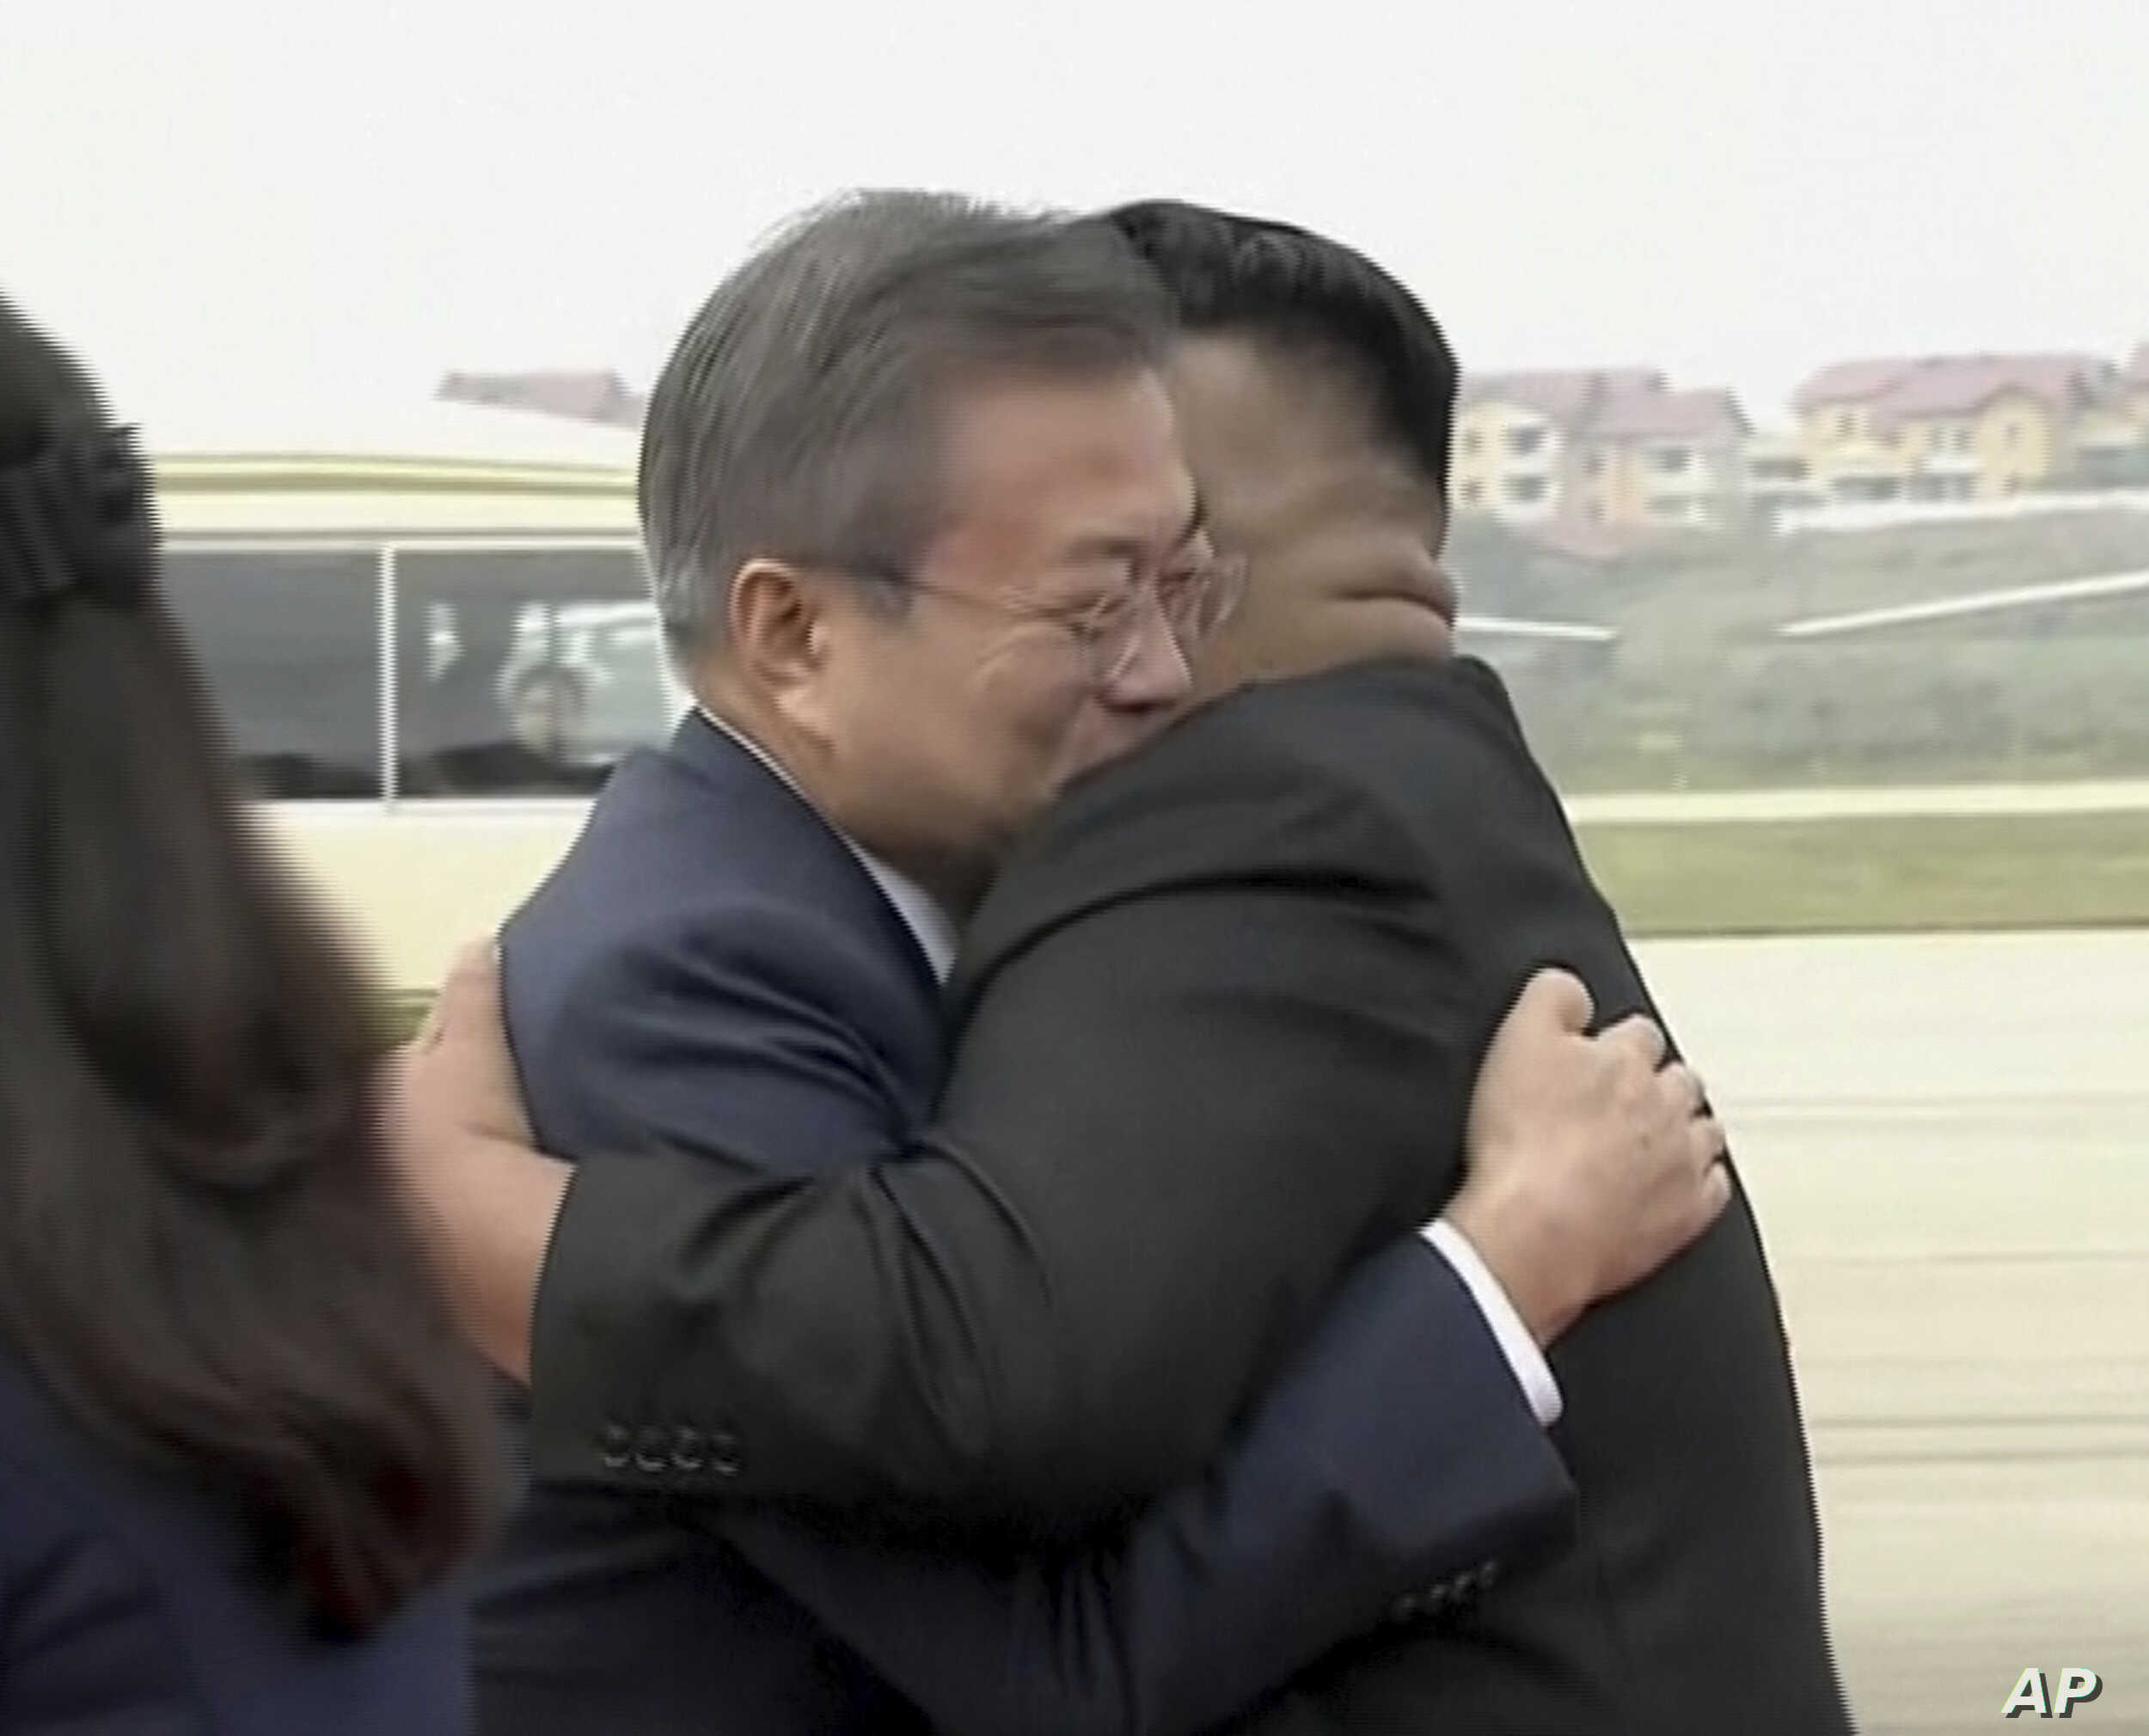 South Korean President Moon Jae-in, left, hugs North Korean leader Kim Jong Un upon arrival in Pyongyang, North Korea, Tuesday, Sept. 18, 2018.